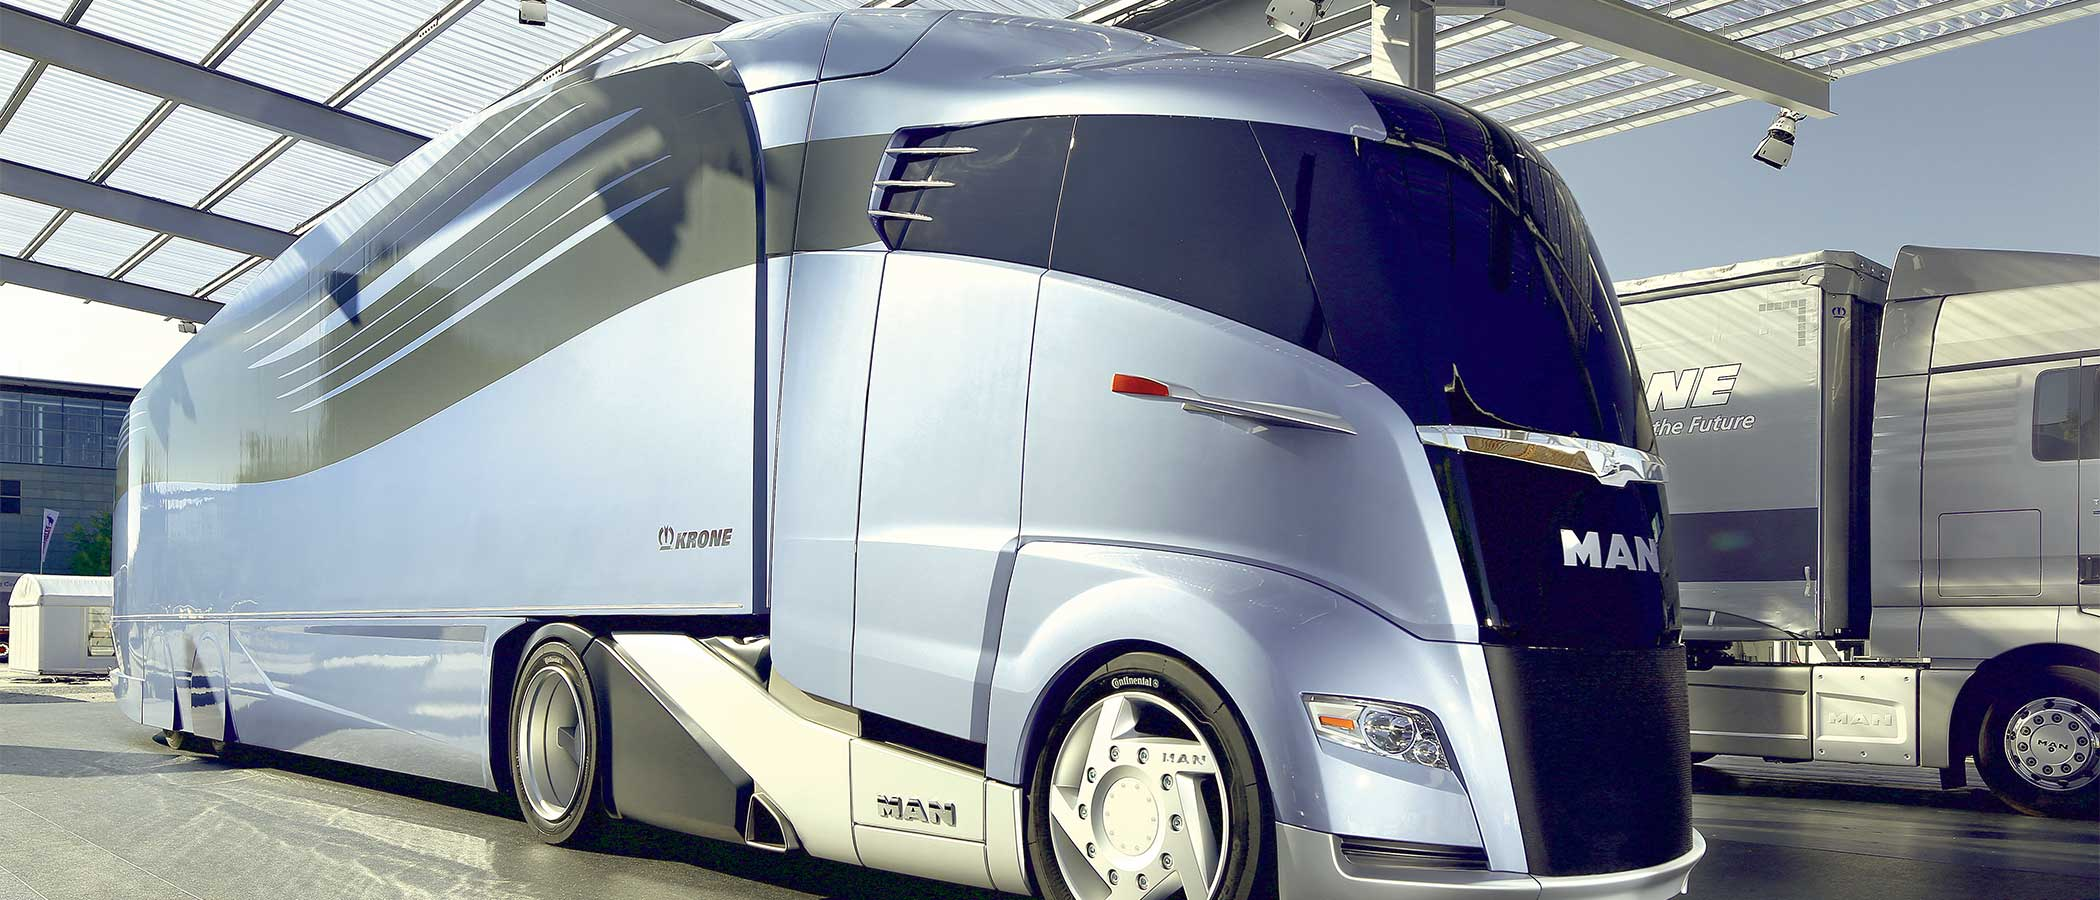 Concept commercial transport truck.